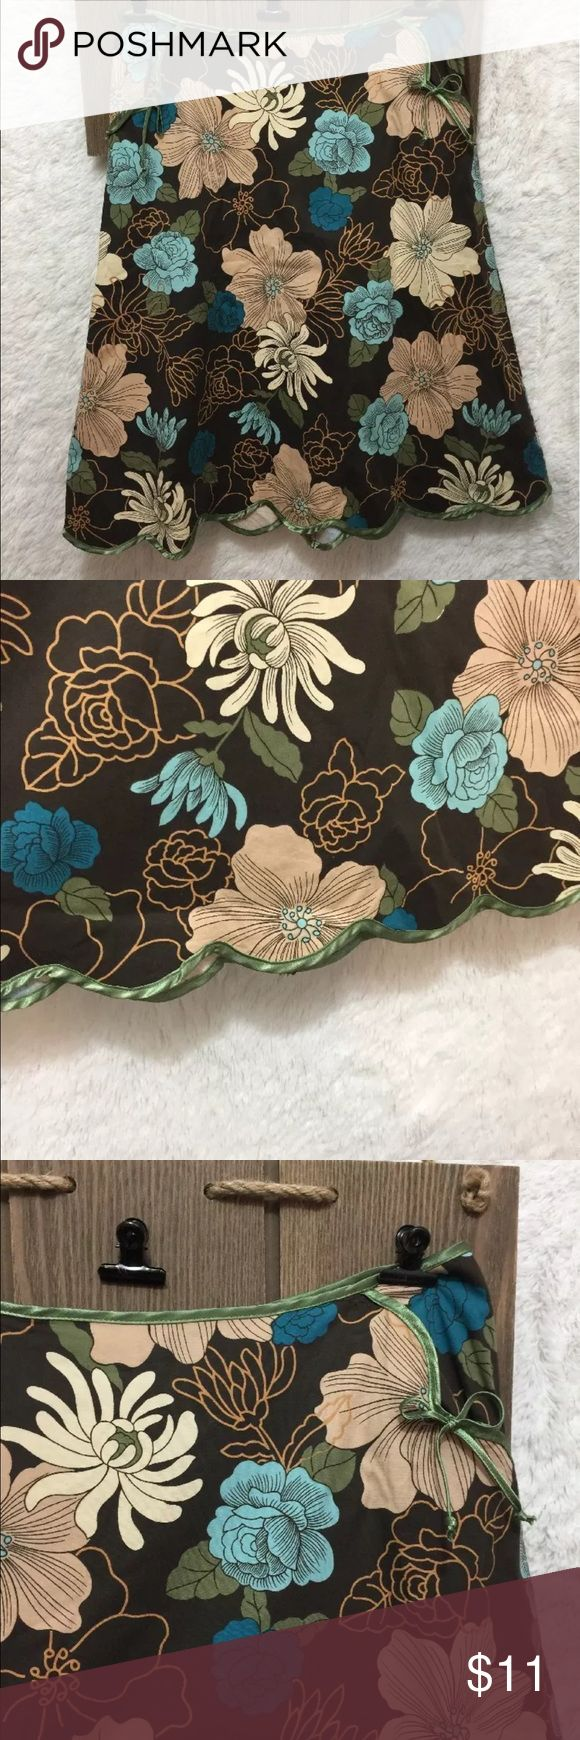 """Women's Matty M Flower floral skirt SZ 6 side zip Women's Matty M size 6 Flower floral pattern skirt side zip up EUC   Z1 PHM     ∴MEASUREMENTS∴  Waist ---->30"""" Length---->24"""" Hip. 38"""" Measurements Are Approximate  And May Vary Slightly. matty m Skirts"""